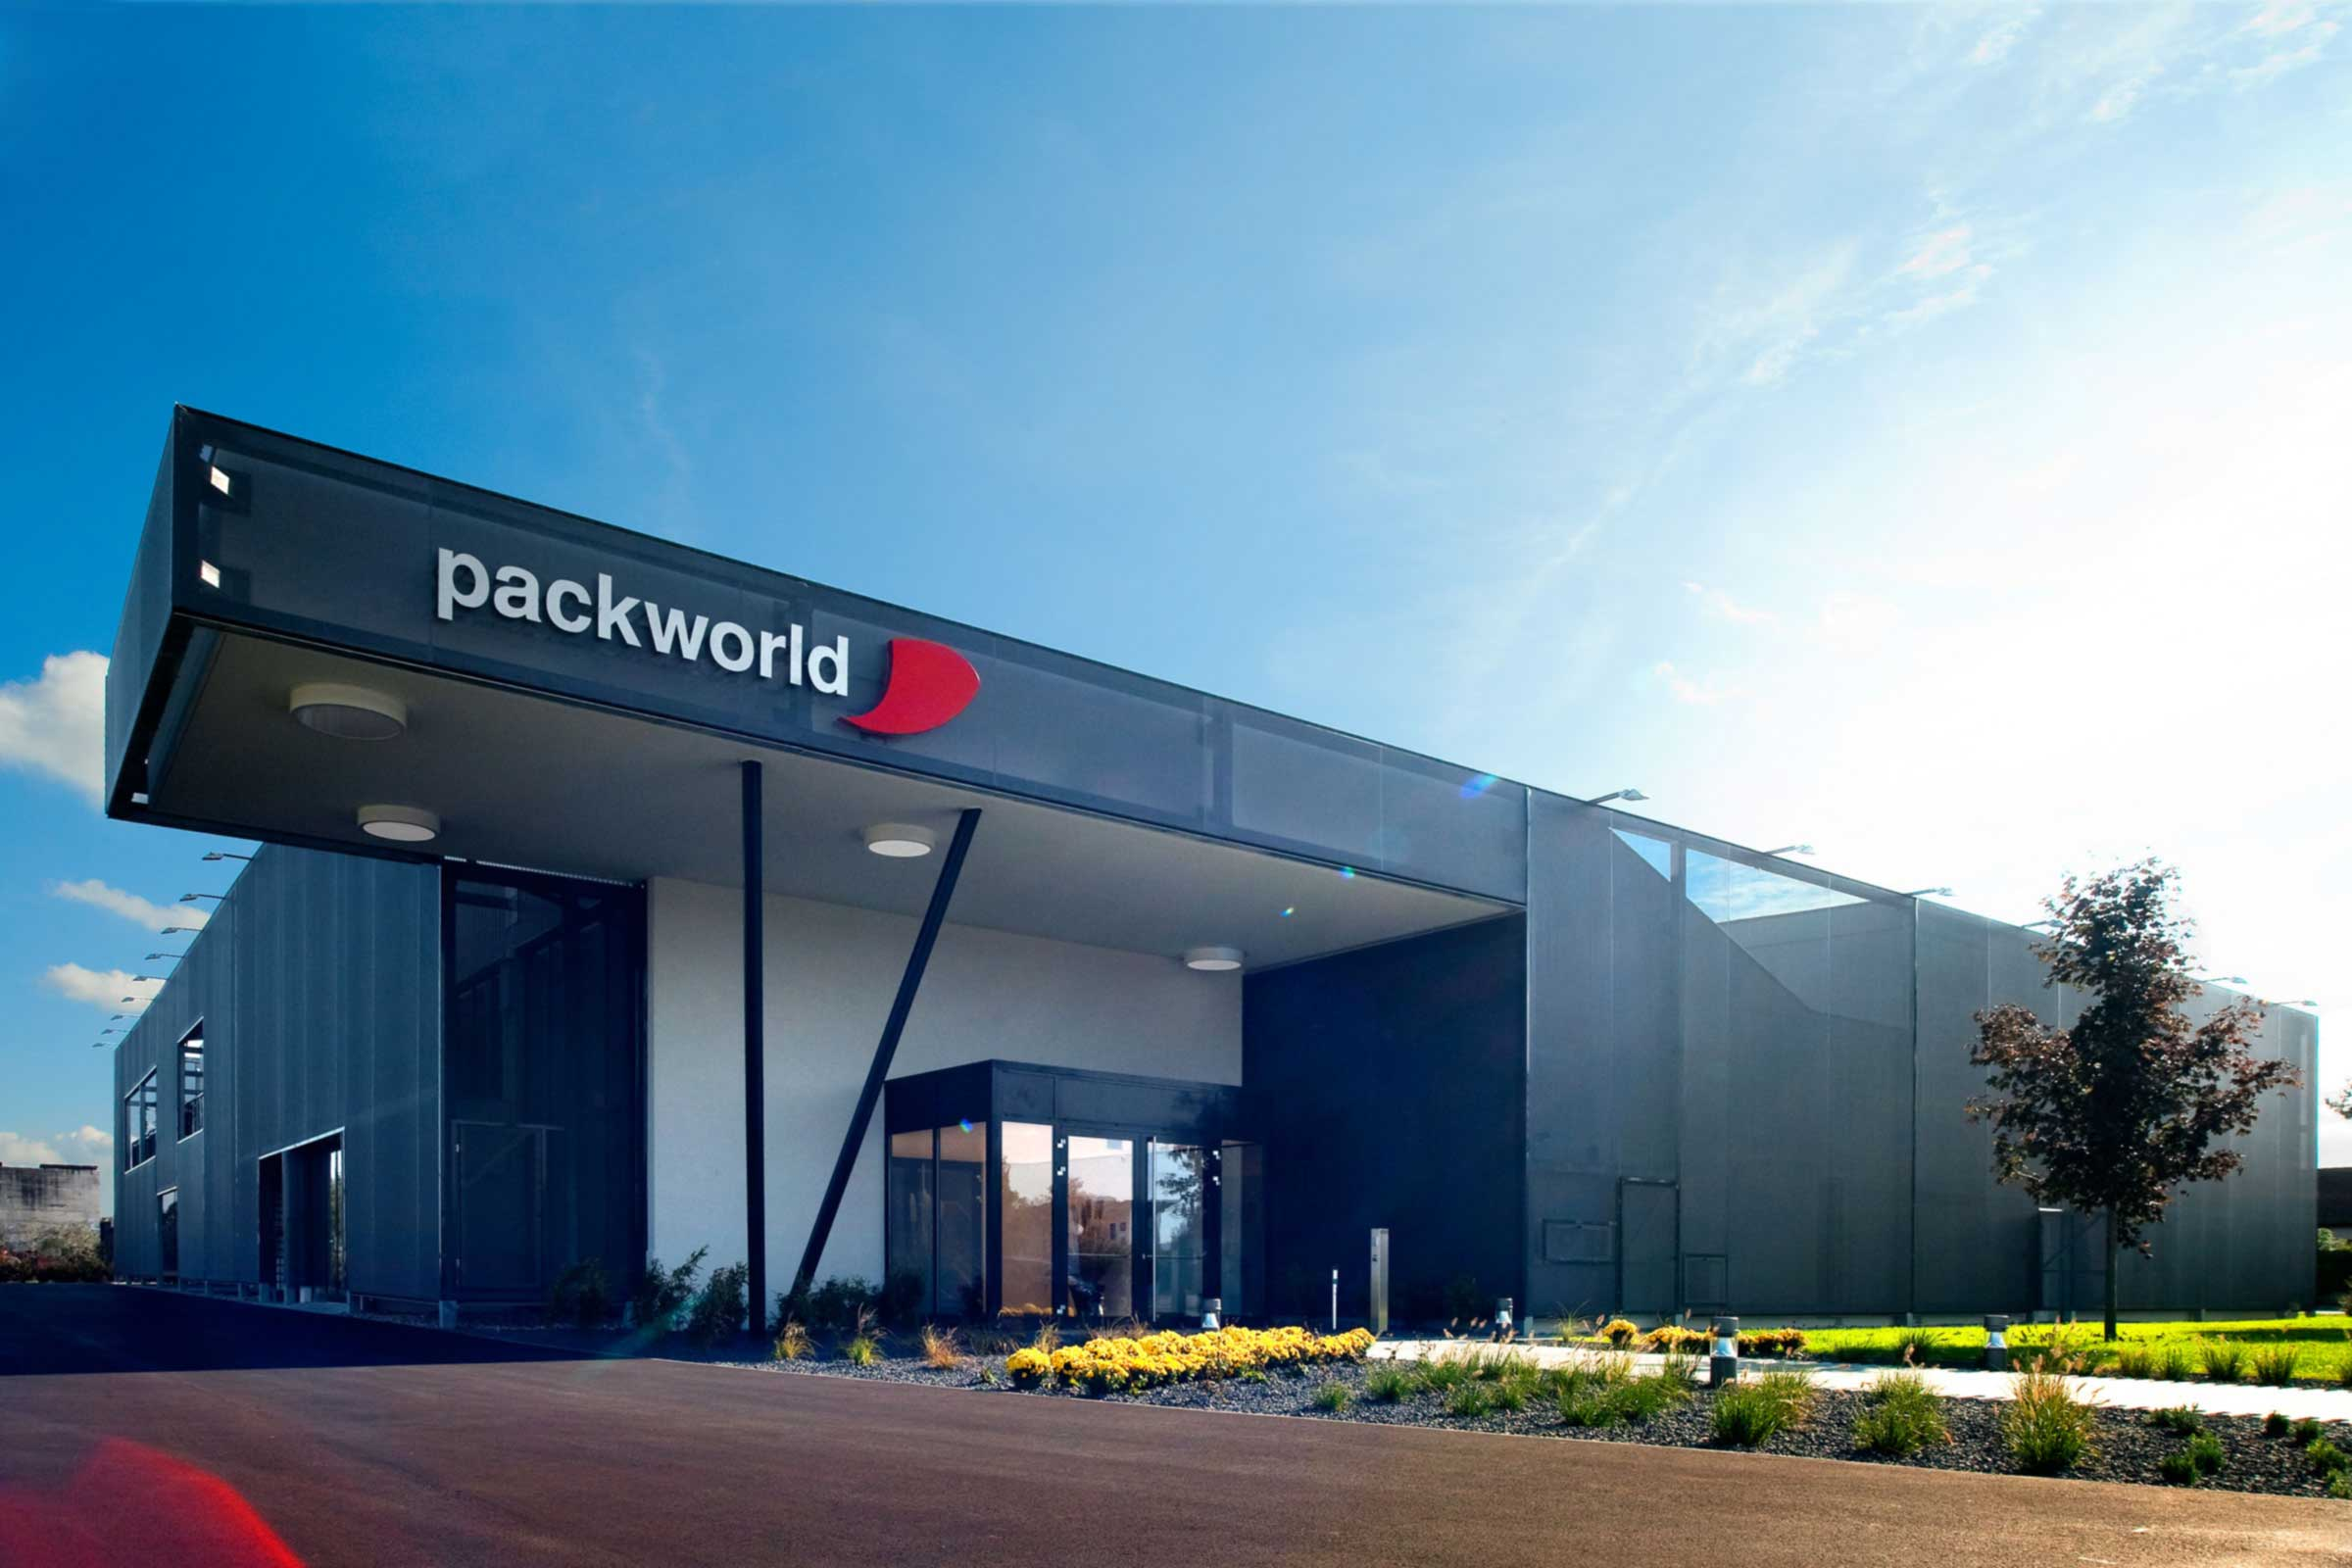 packworld_2400x1600